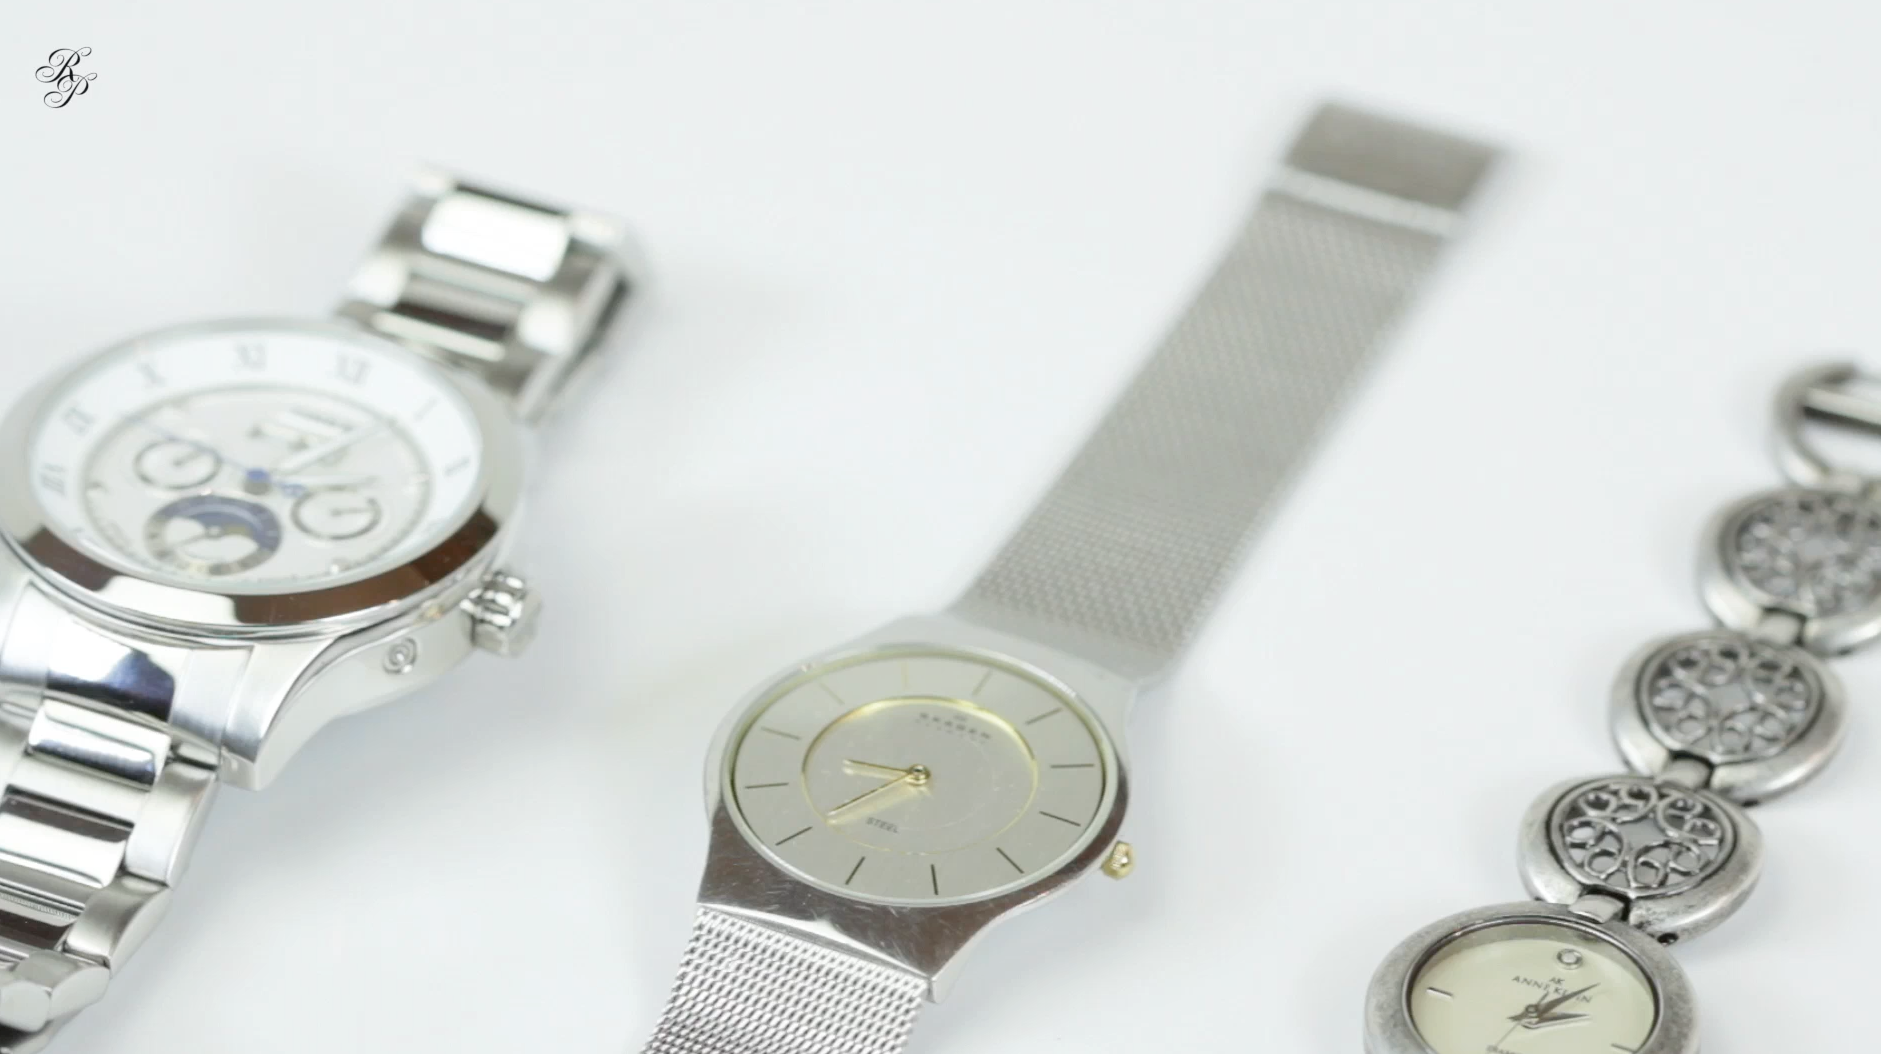 Types Of Watch Bands >> A Video Guide To Choosing A Good Watch Band Raoul Pop